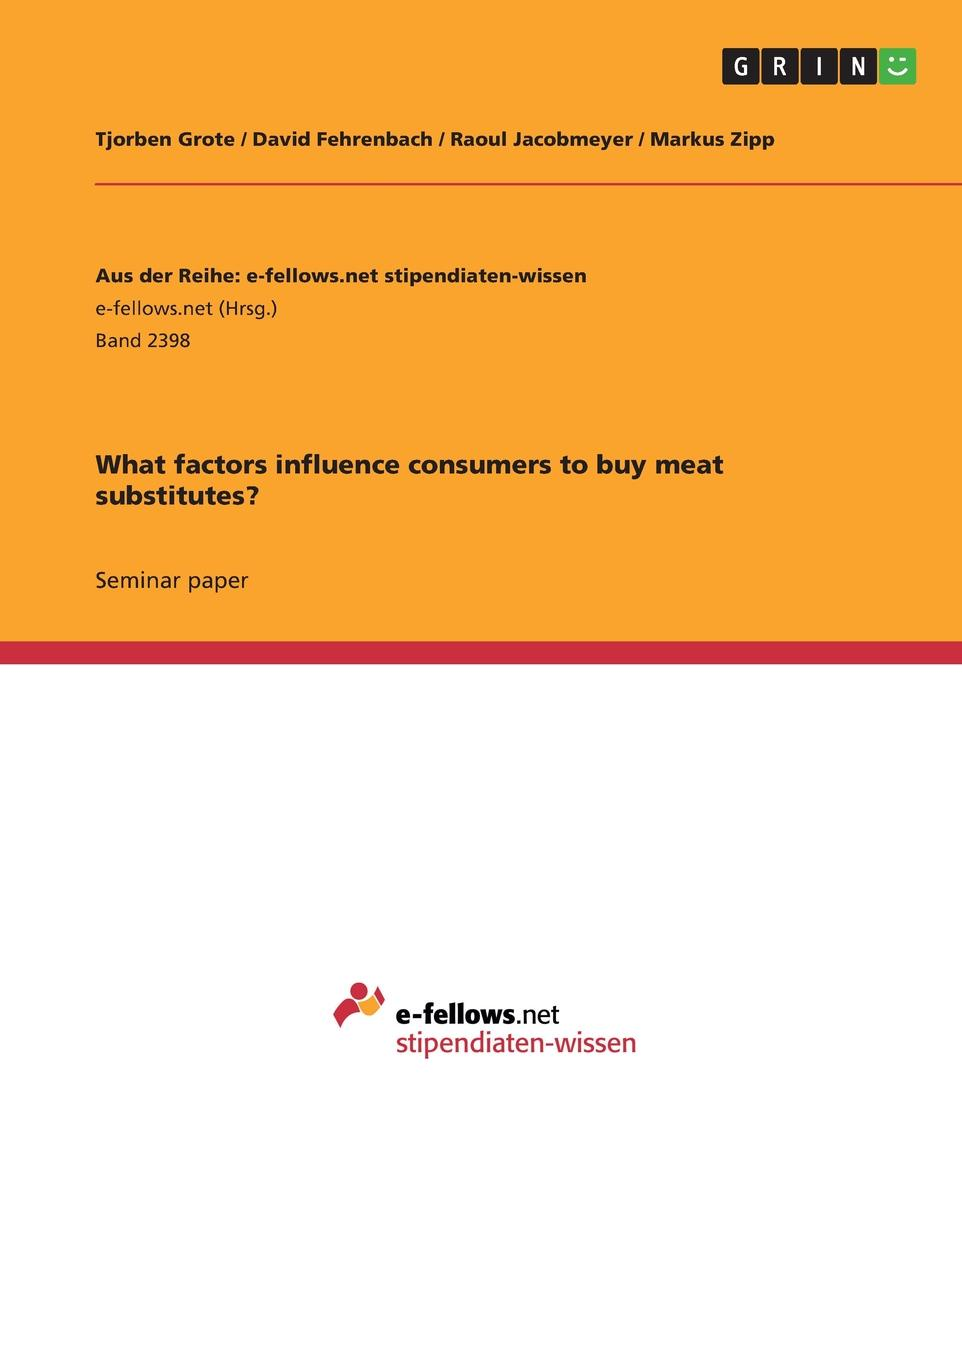 Tjorben Grote, David Fehrenbach, Raoul Jacobmeyer What factors influence consumers to buy meat substitutes. color as a method of influence on consumers